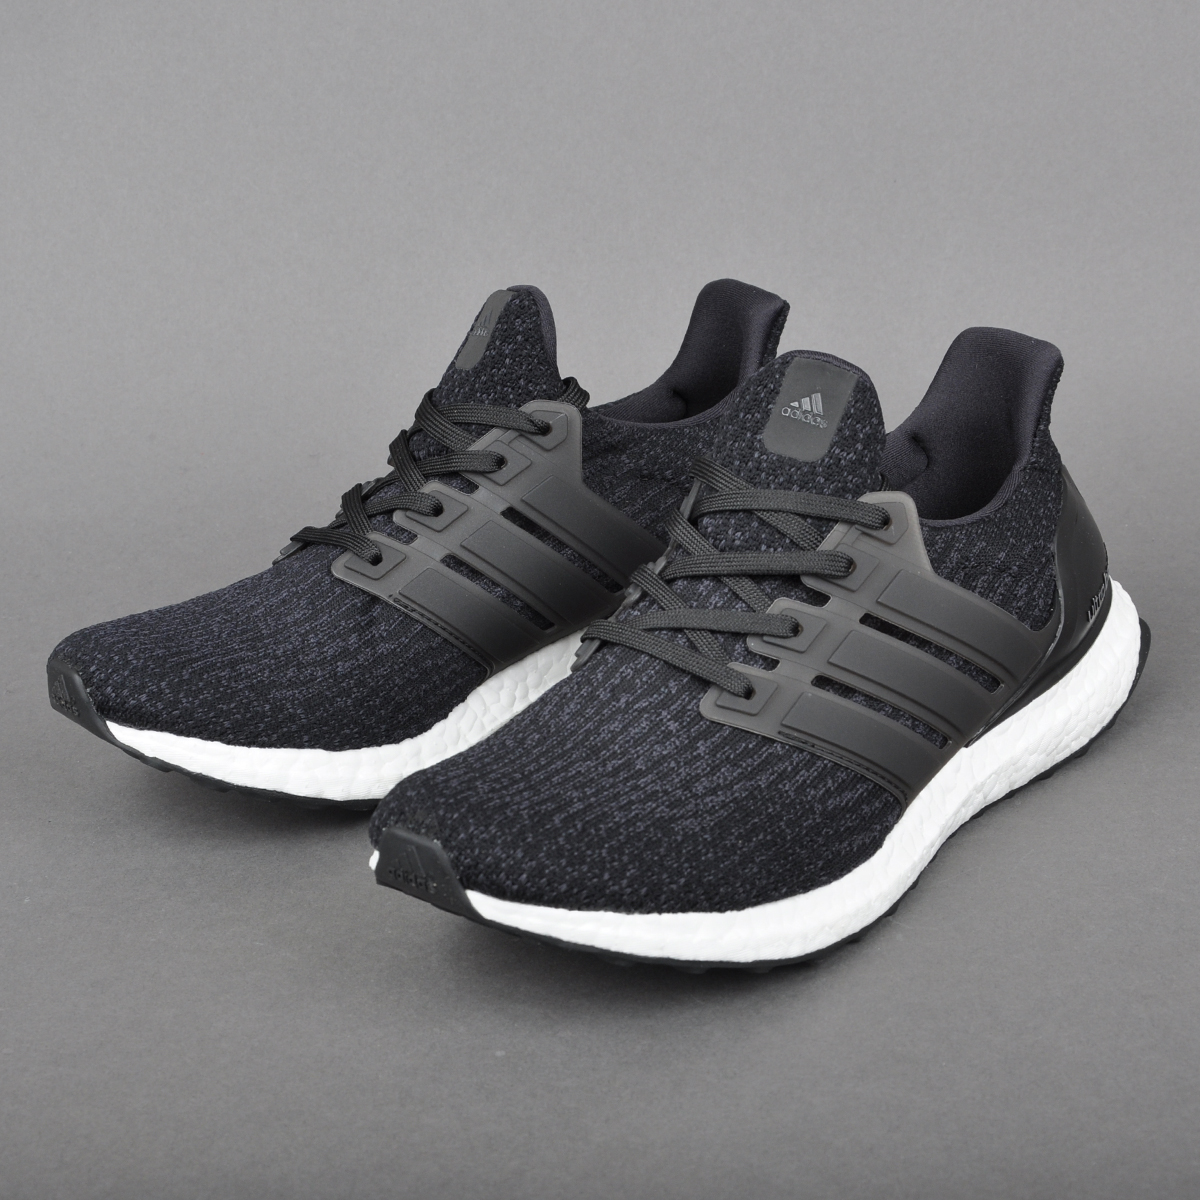 Adidas Ultra Boost Core Black 3.0